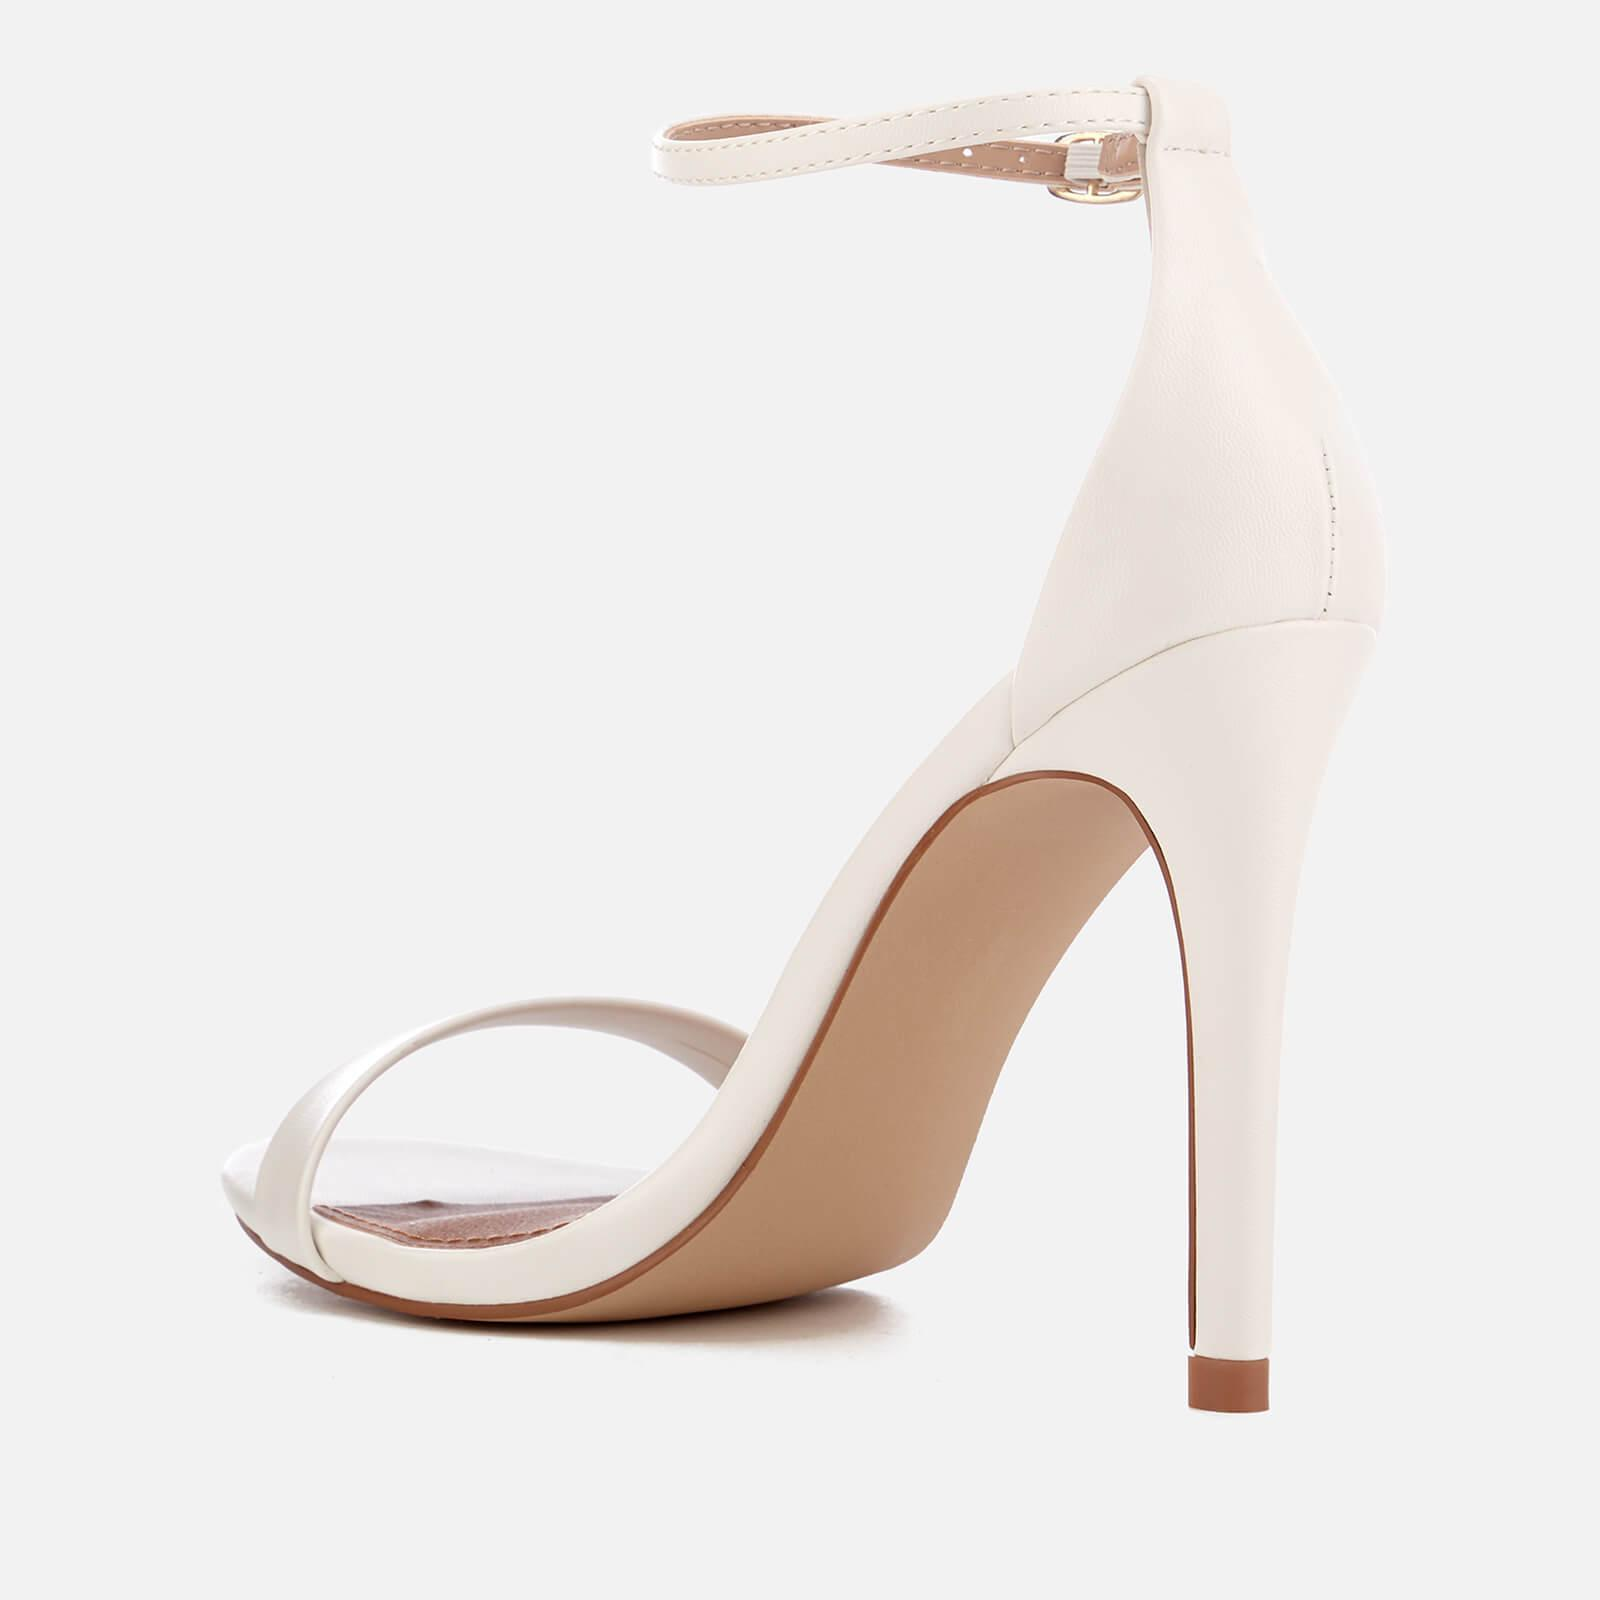 f840e02c3f Steve Madden - White Stecy Barely There Heeled Sandals - Lyst. View  fullscreen